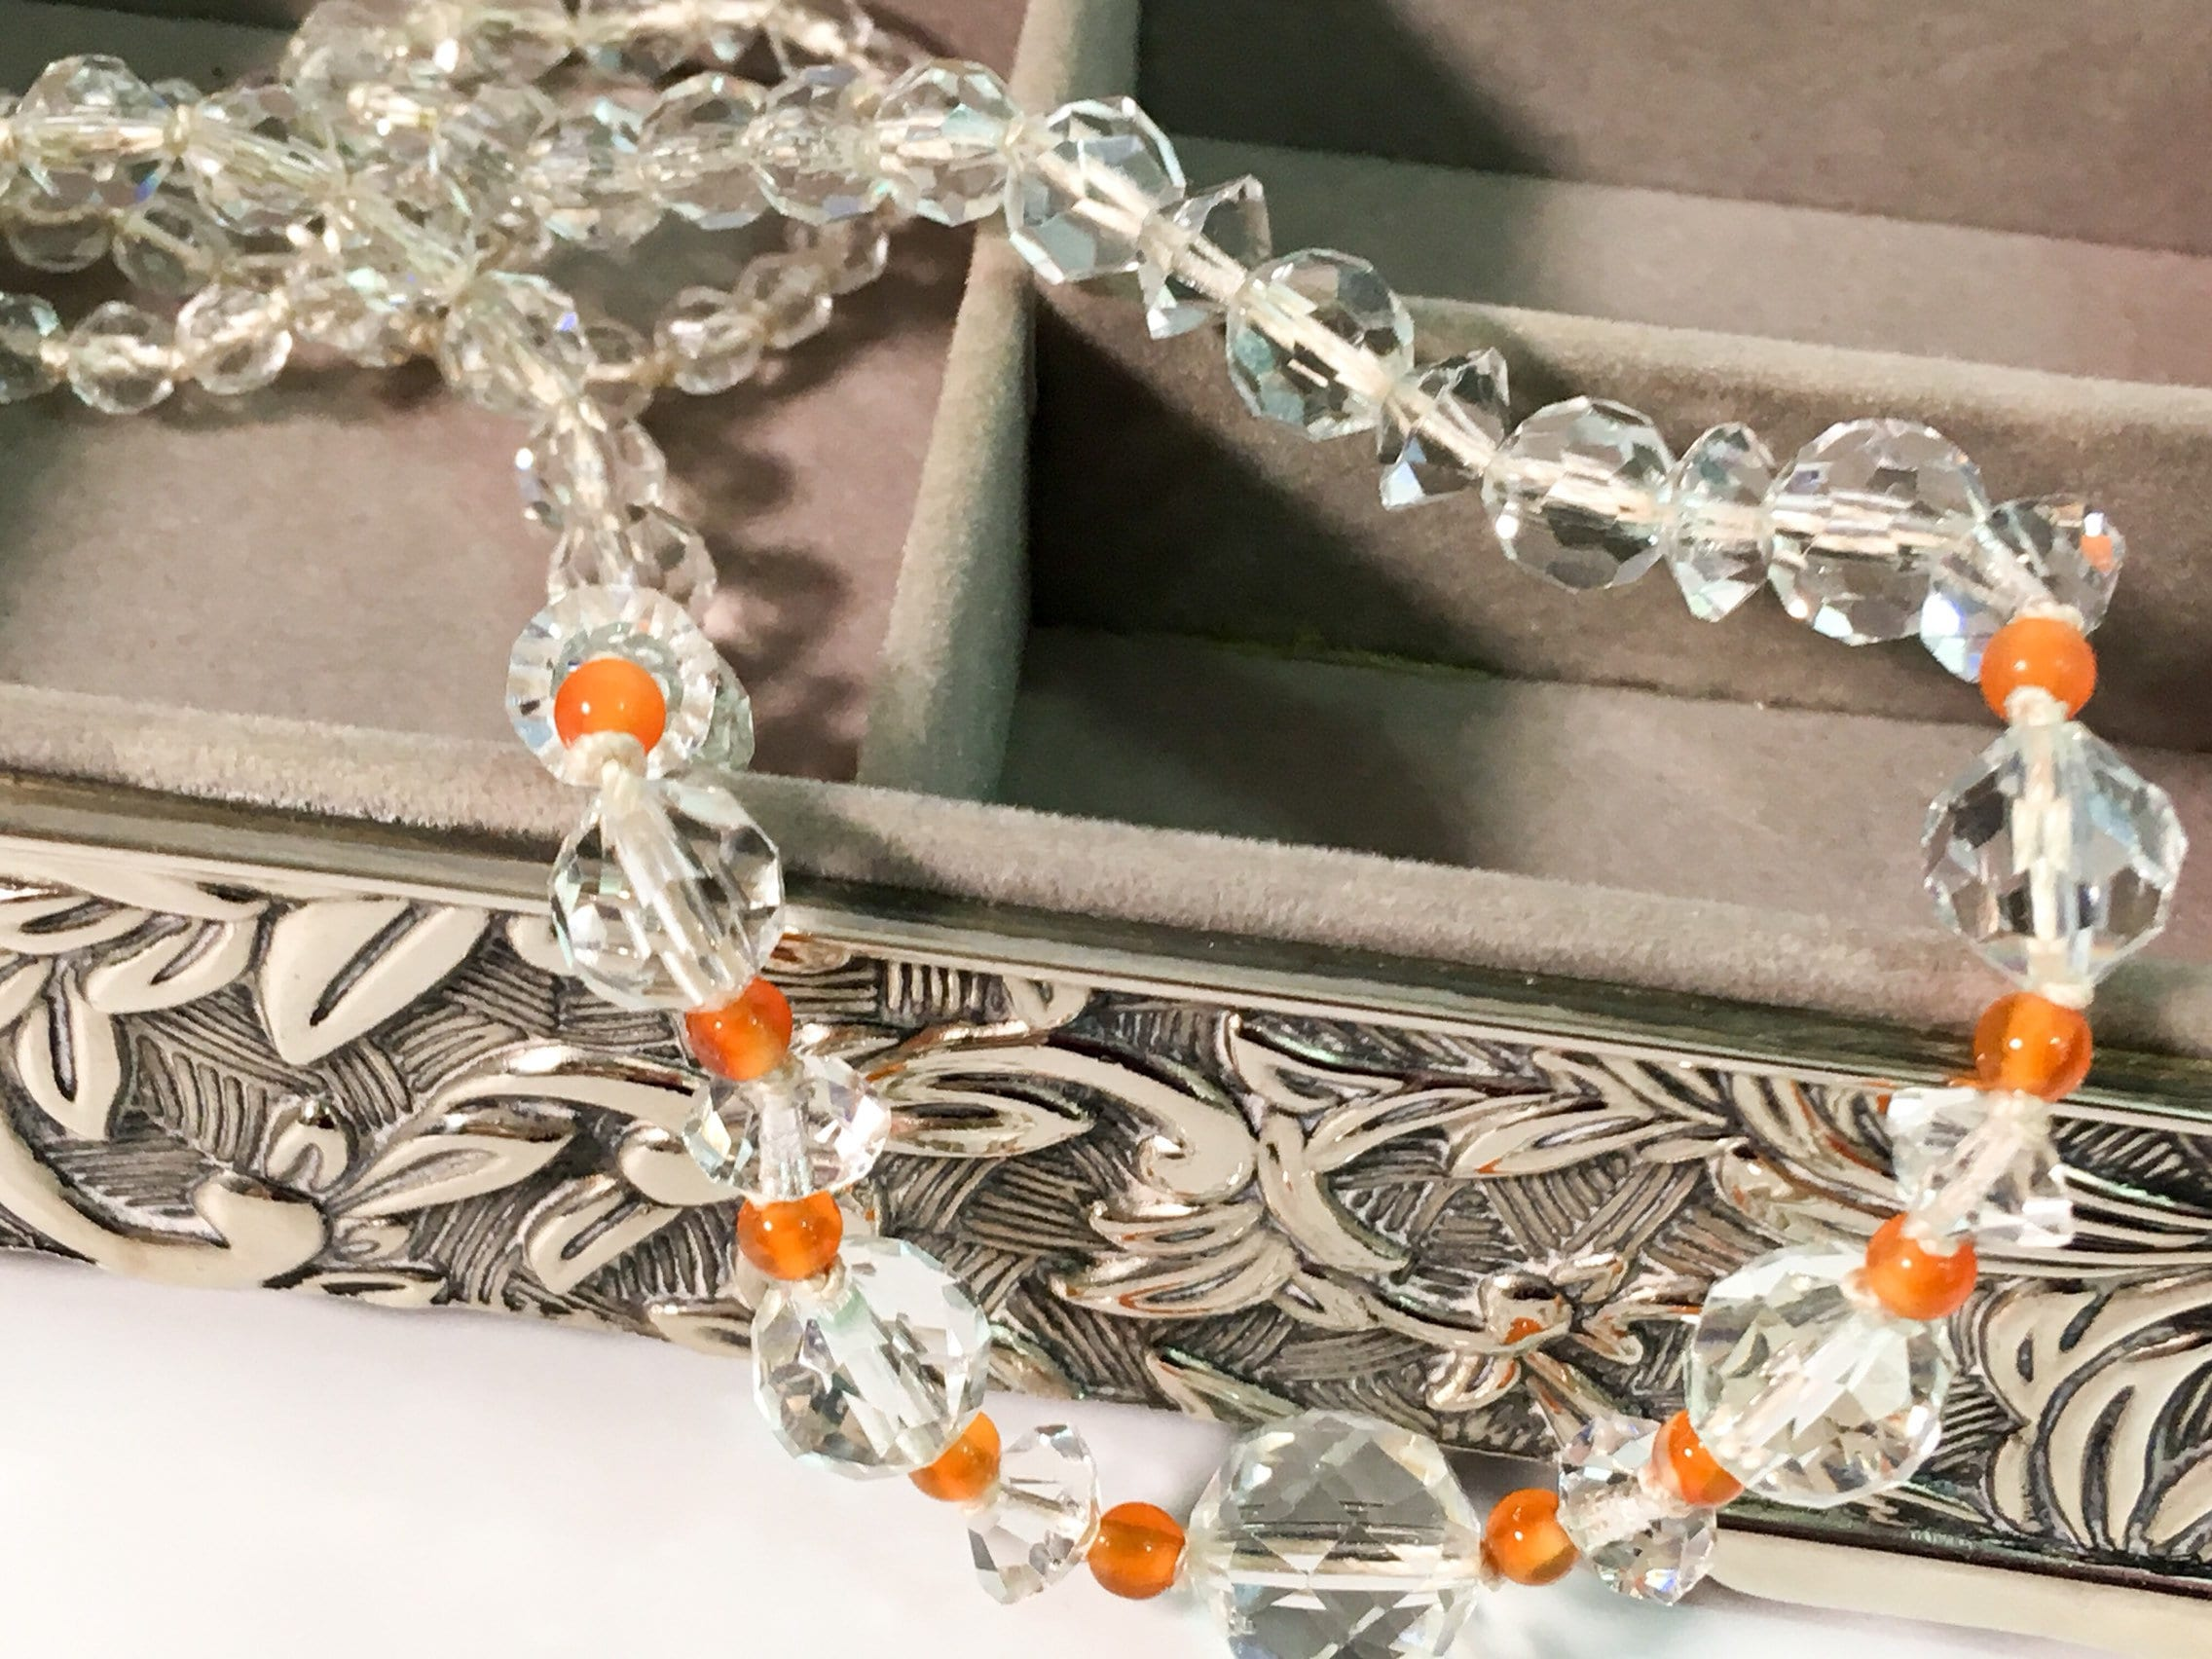 Hand Knotted Necklace Vintage Memory Bracelet Vintage Multi-Faceted Necklace Clear Crystal Glass Necklace Graduated Size Beads